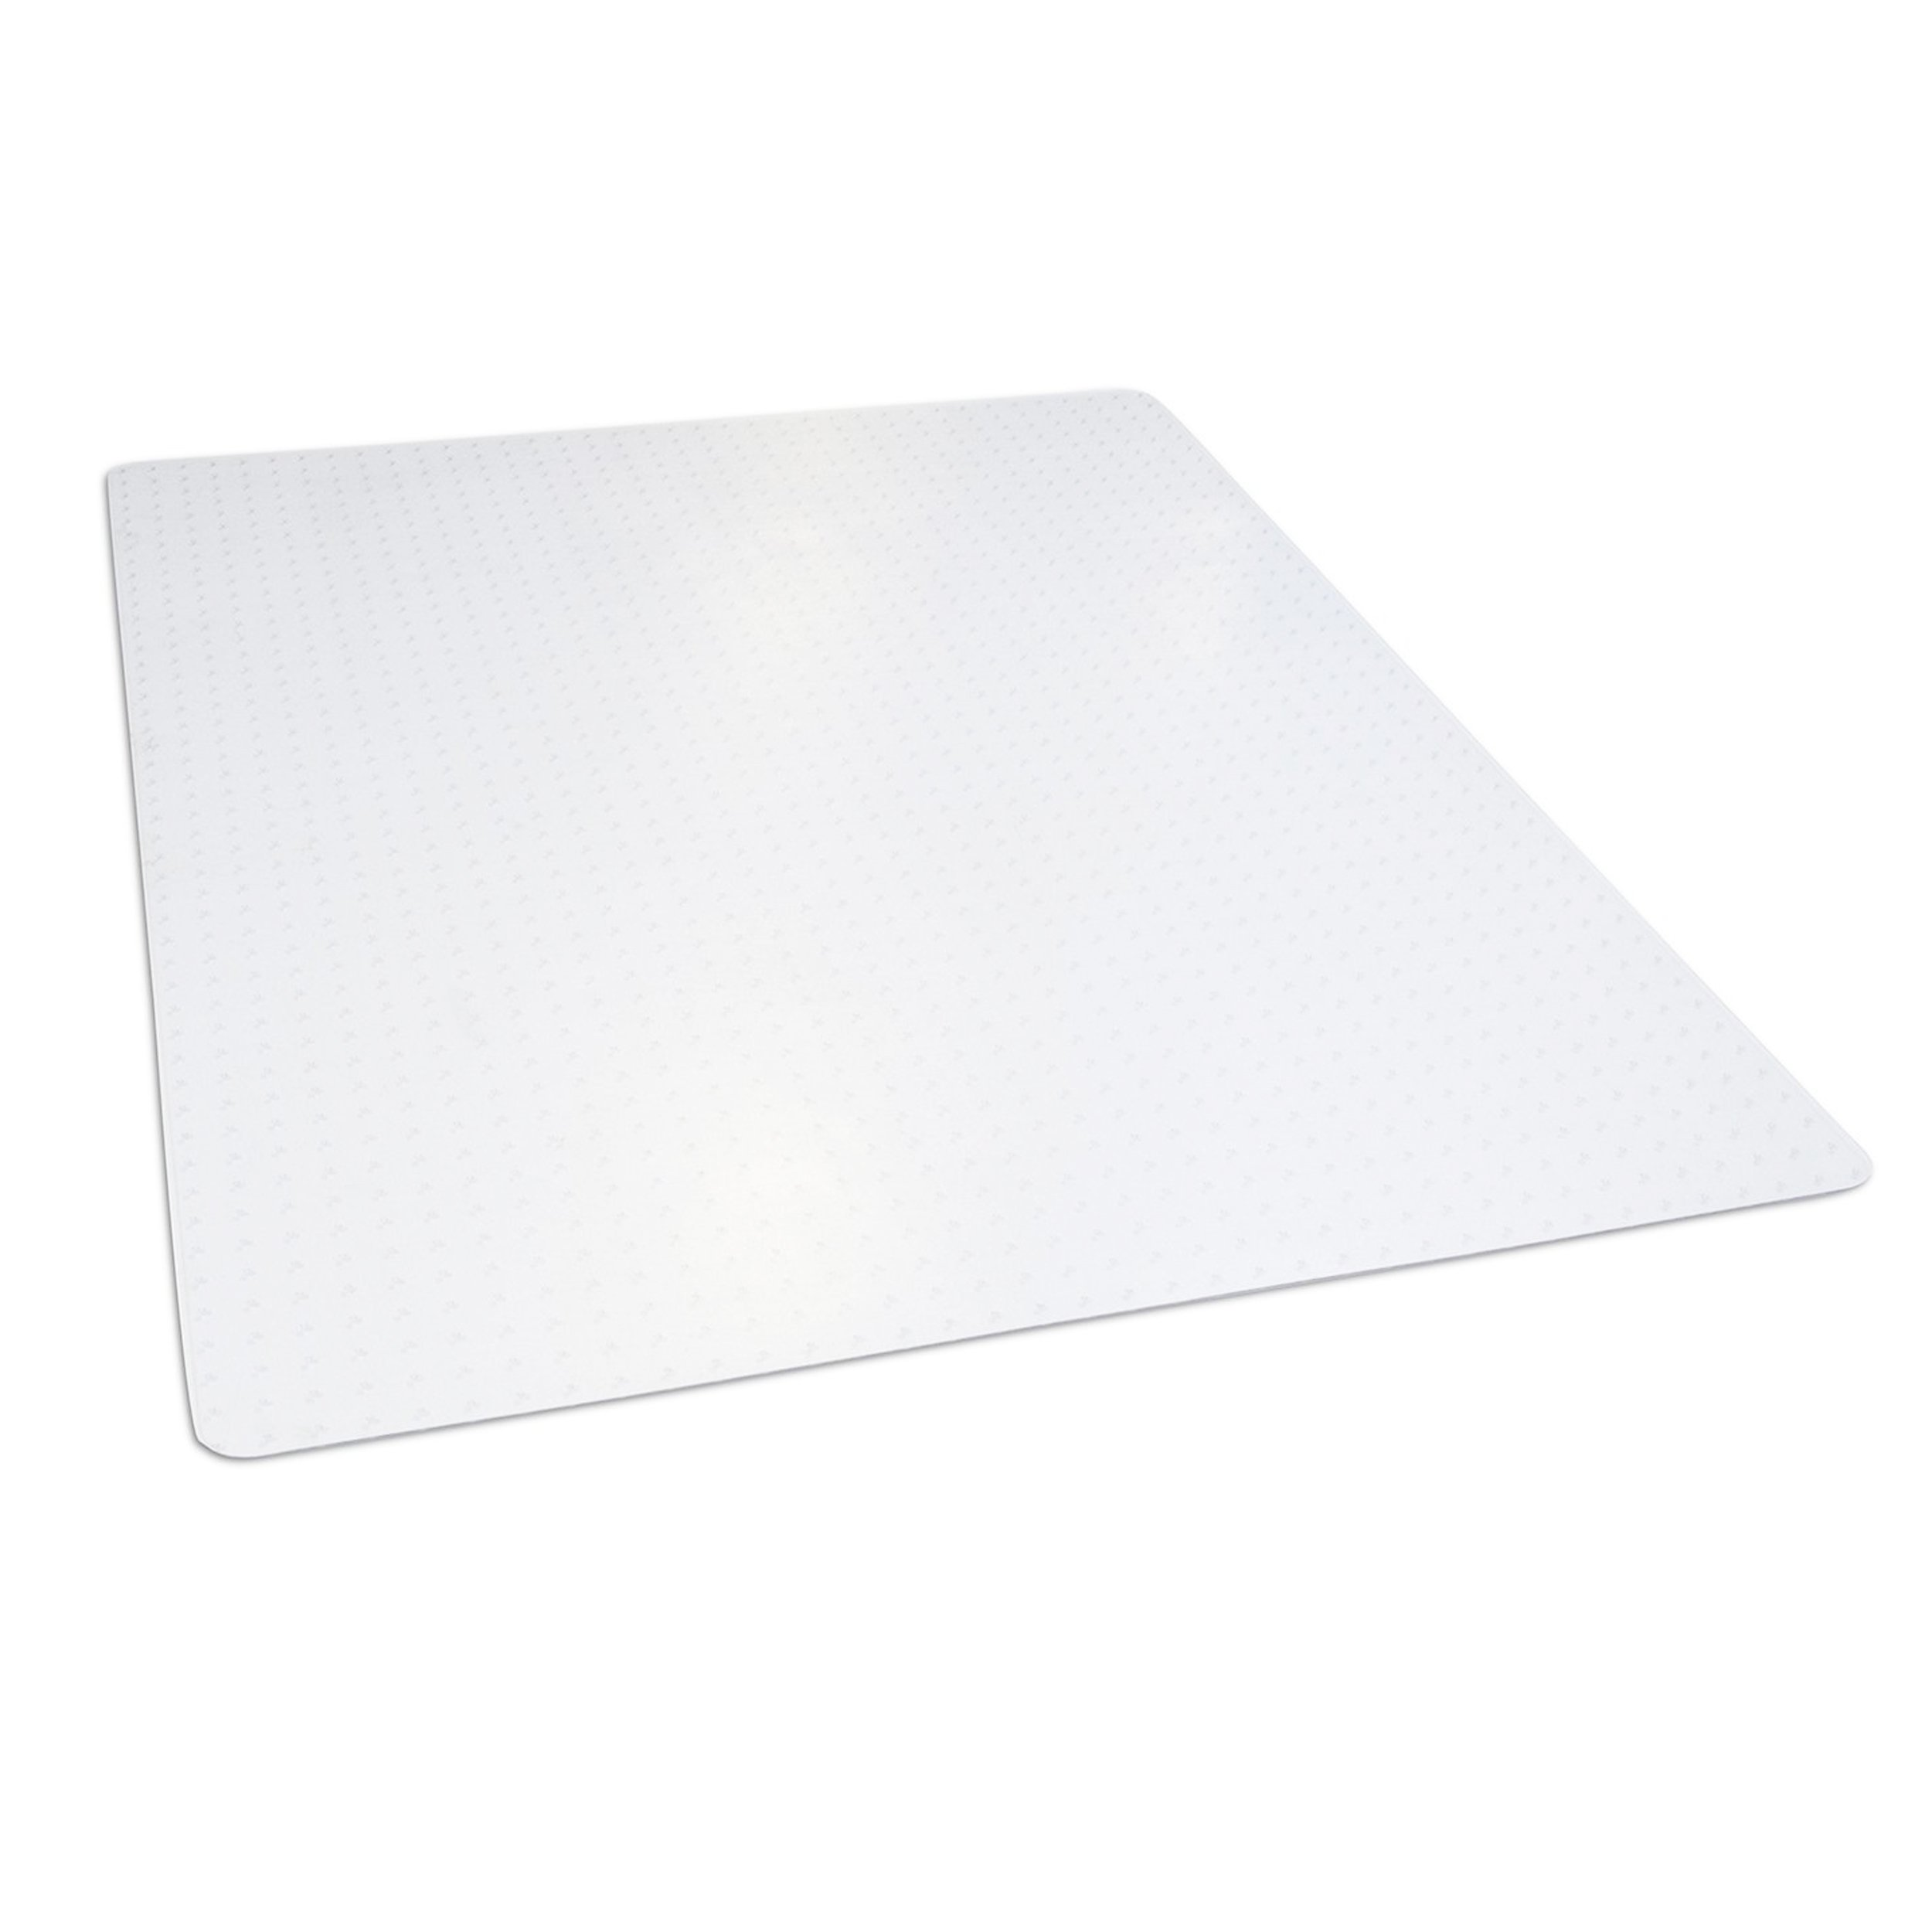 Dimex 46''x 60'' Clear Rectangle Office Chair Mat For Low And Medium Pile Carpet, Made In The USA, BPA And Phthalate Free, C532001J